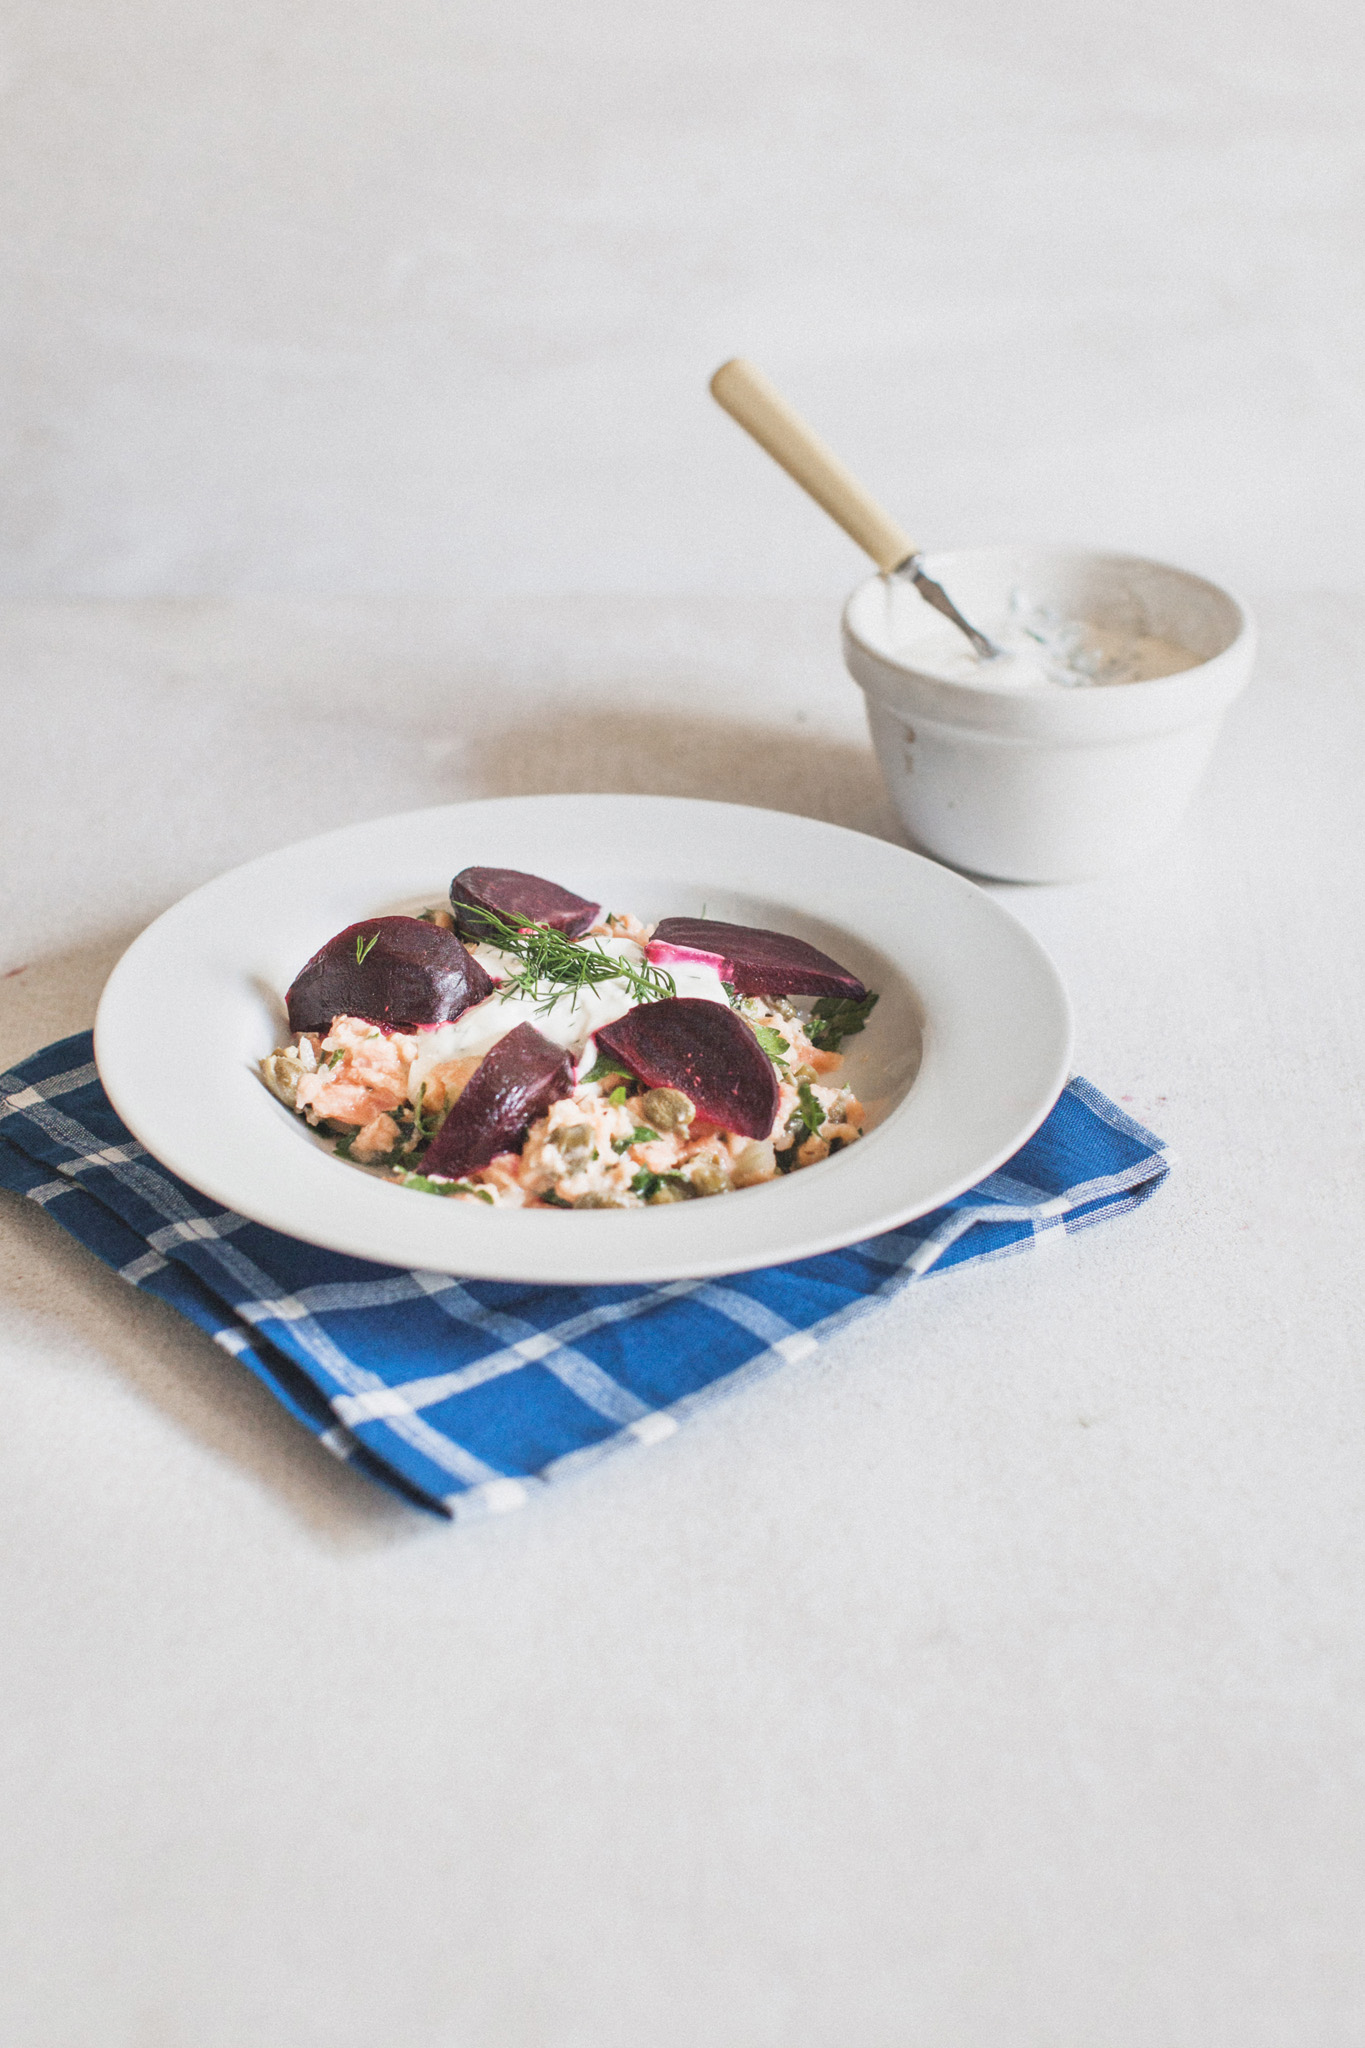 Salmon tartar with roast beetroot and dill creme fraiche. Retreat // Food and lifestyle blog based in Sussex. Photography by Emma Gutteridge.